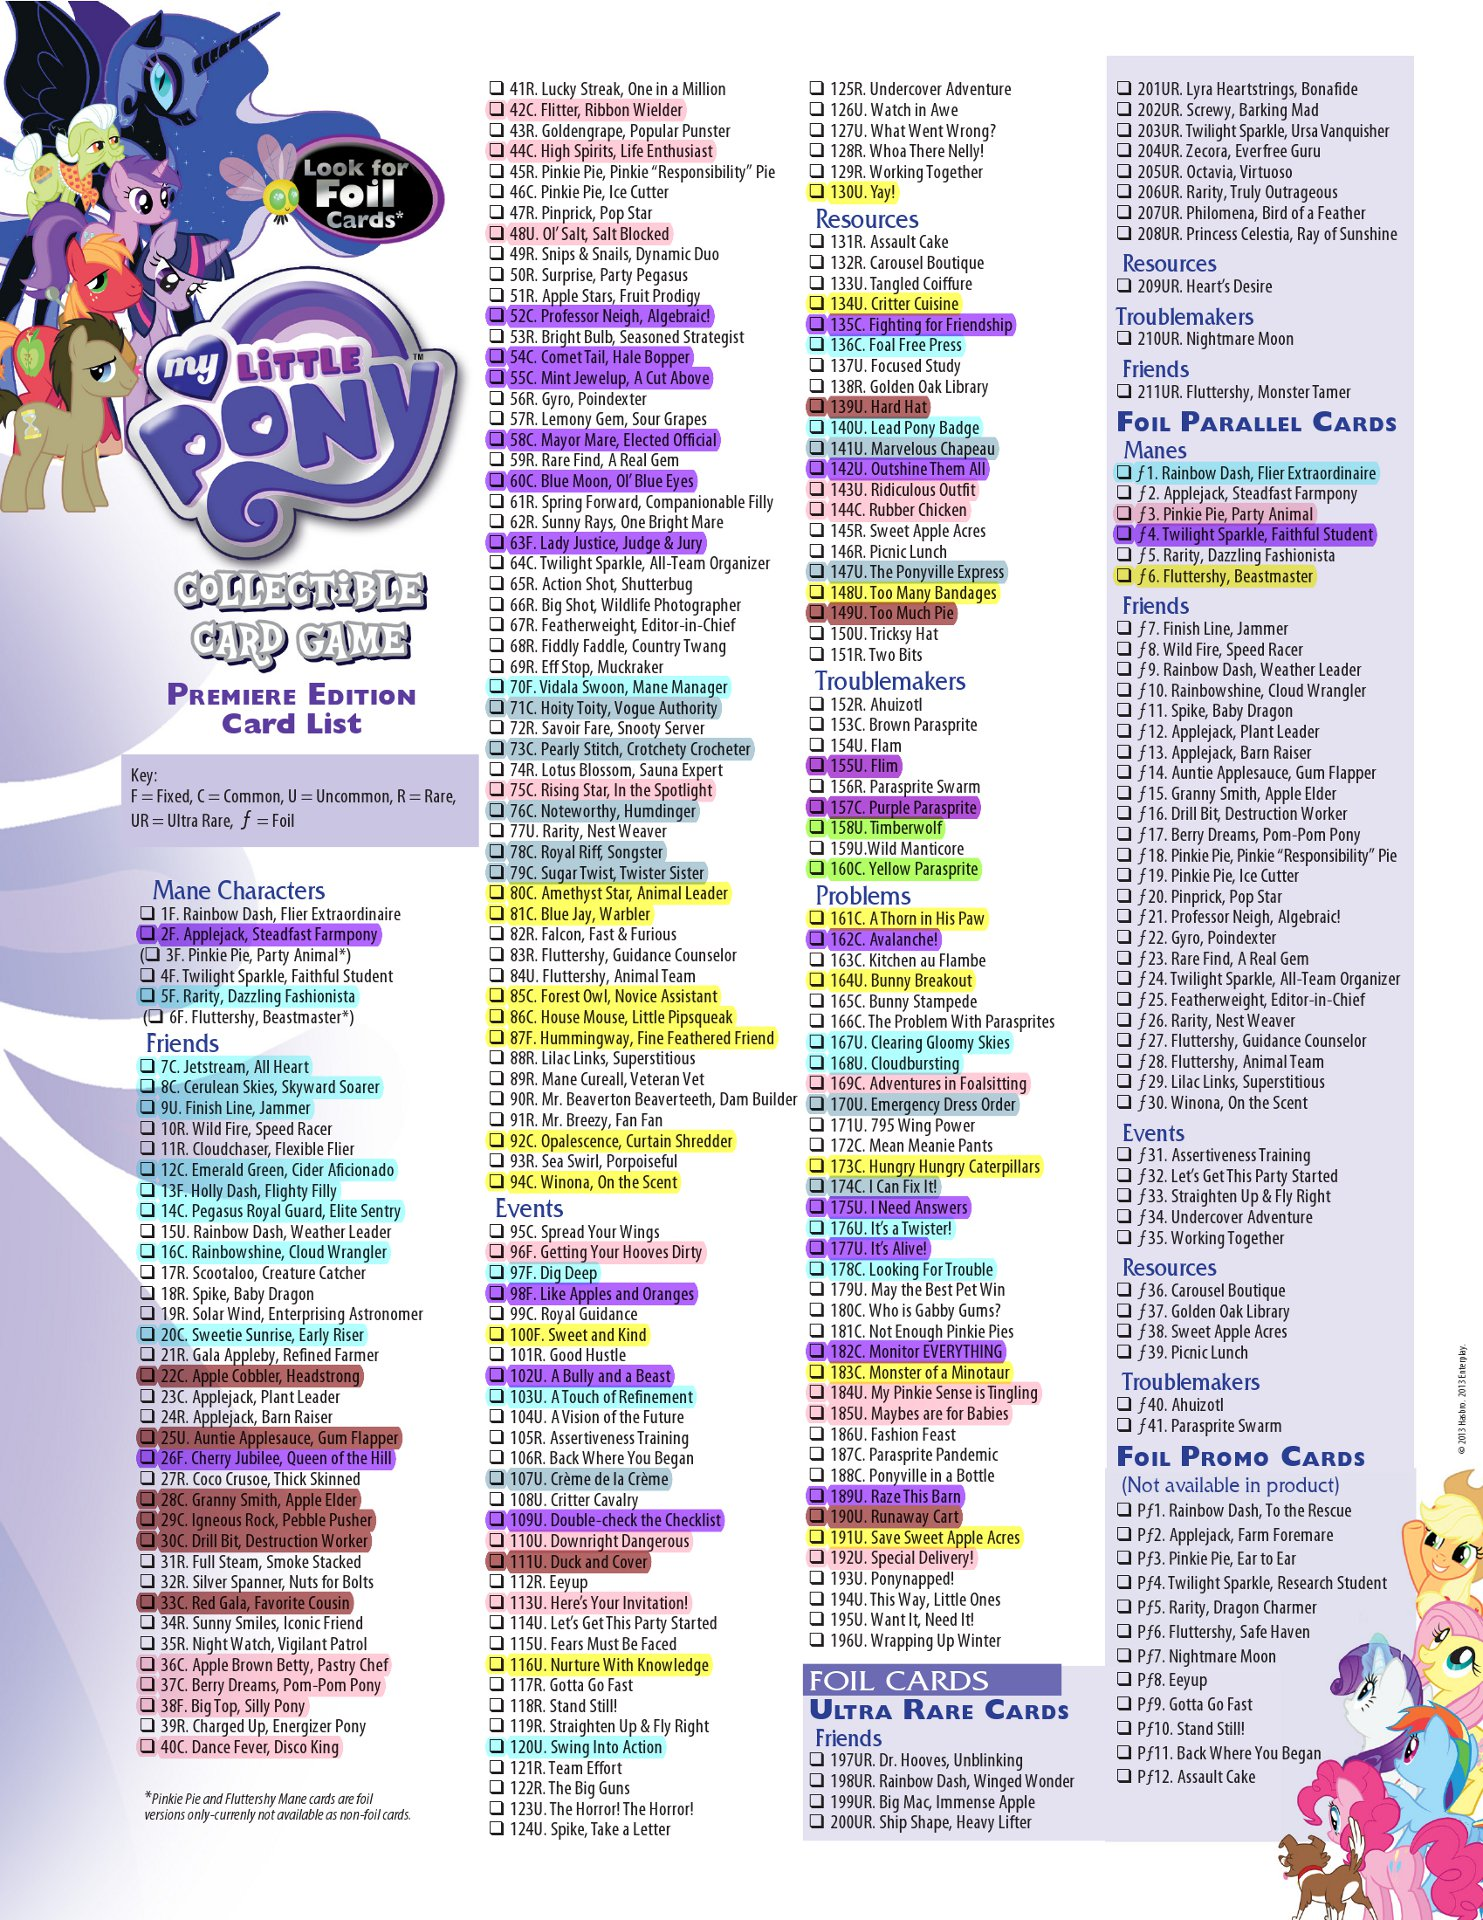 my little pony page 1723 tfw2005 the 2005 boards